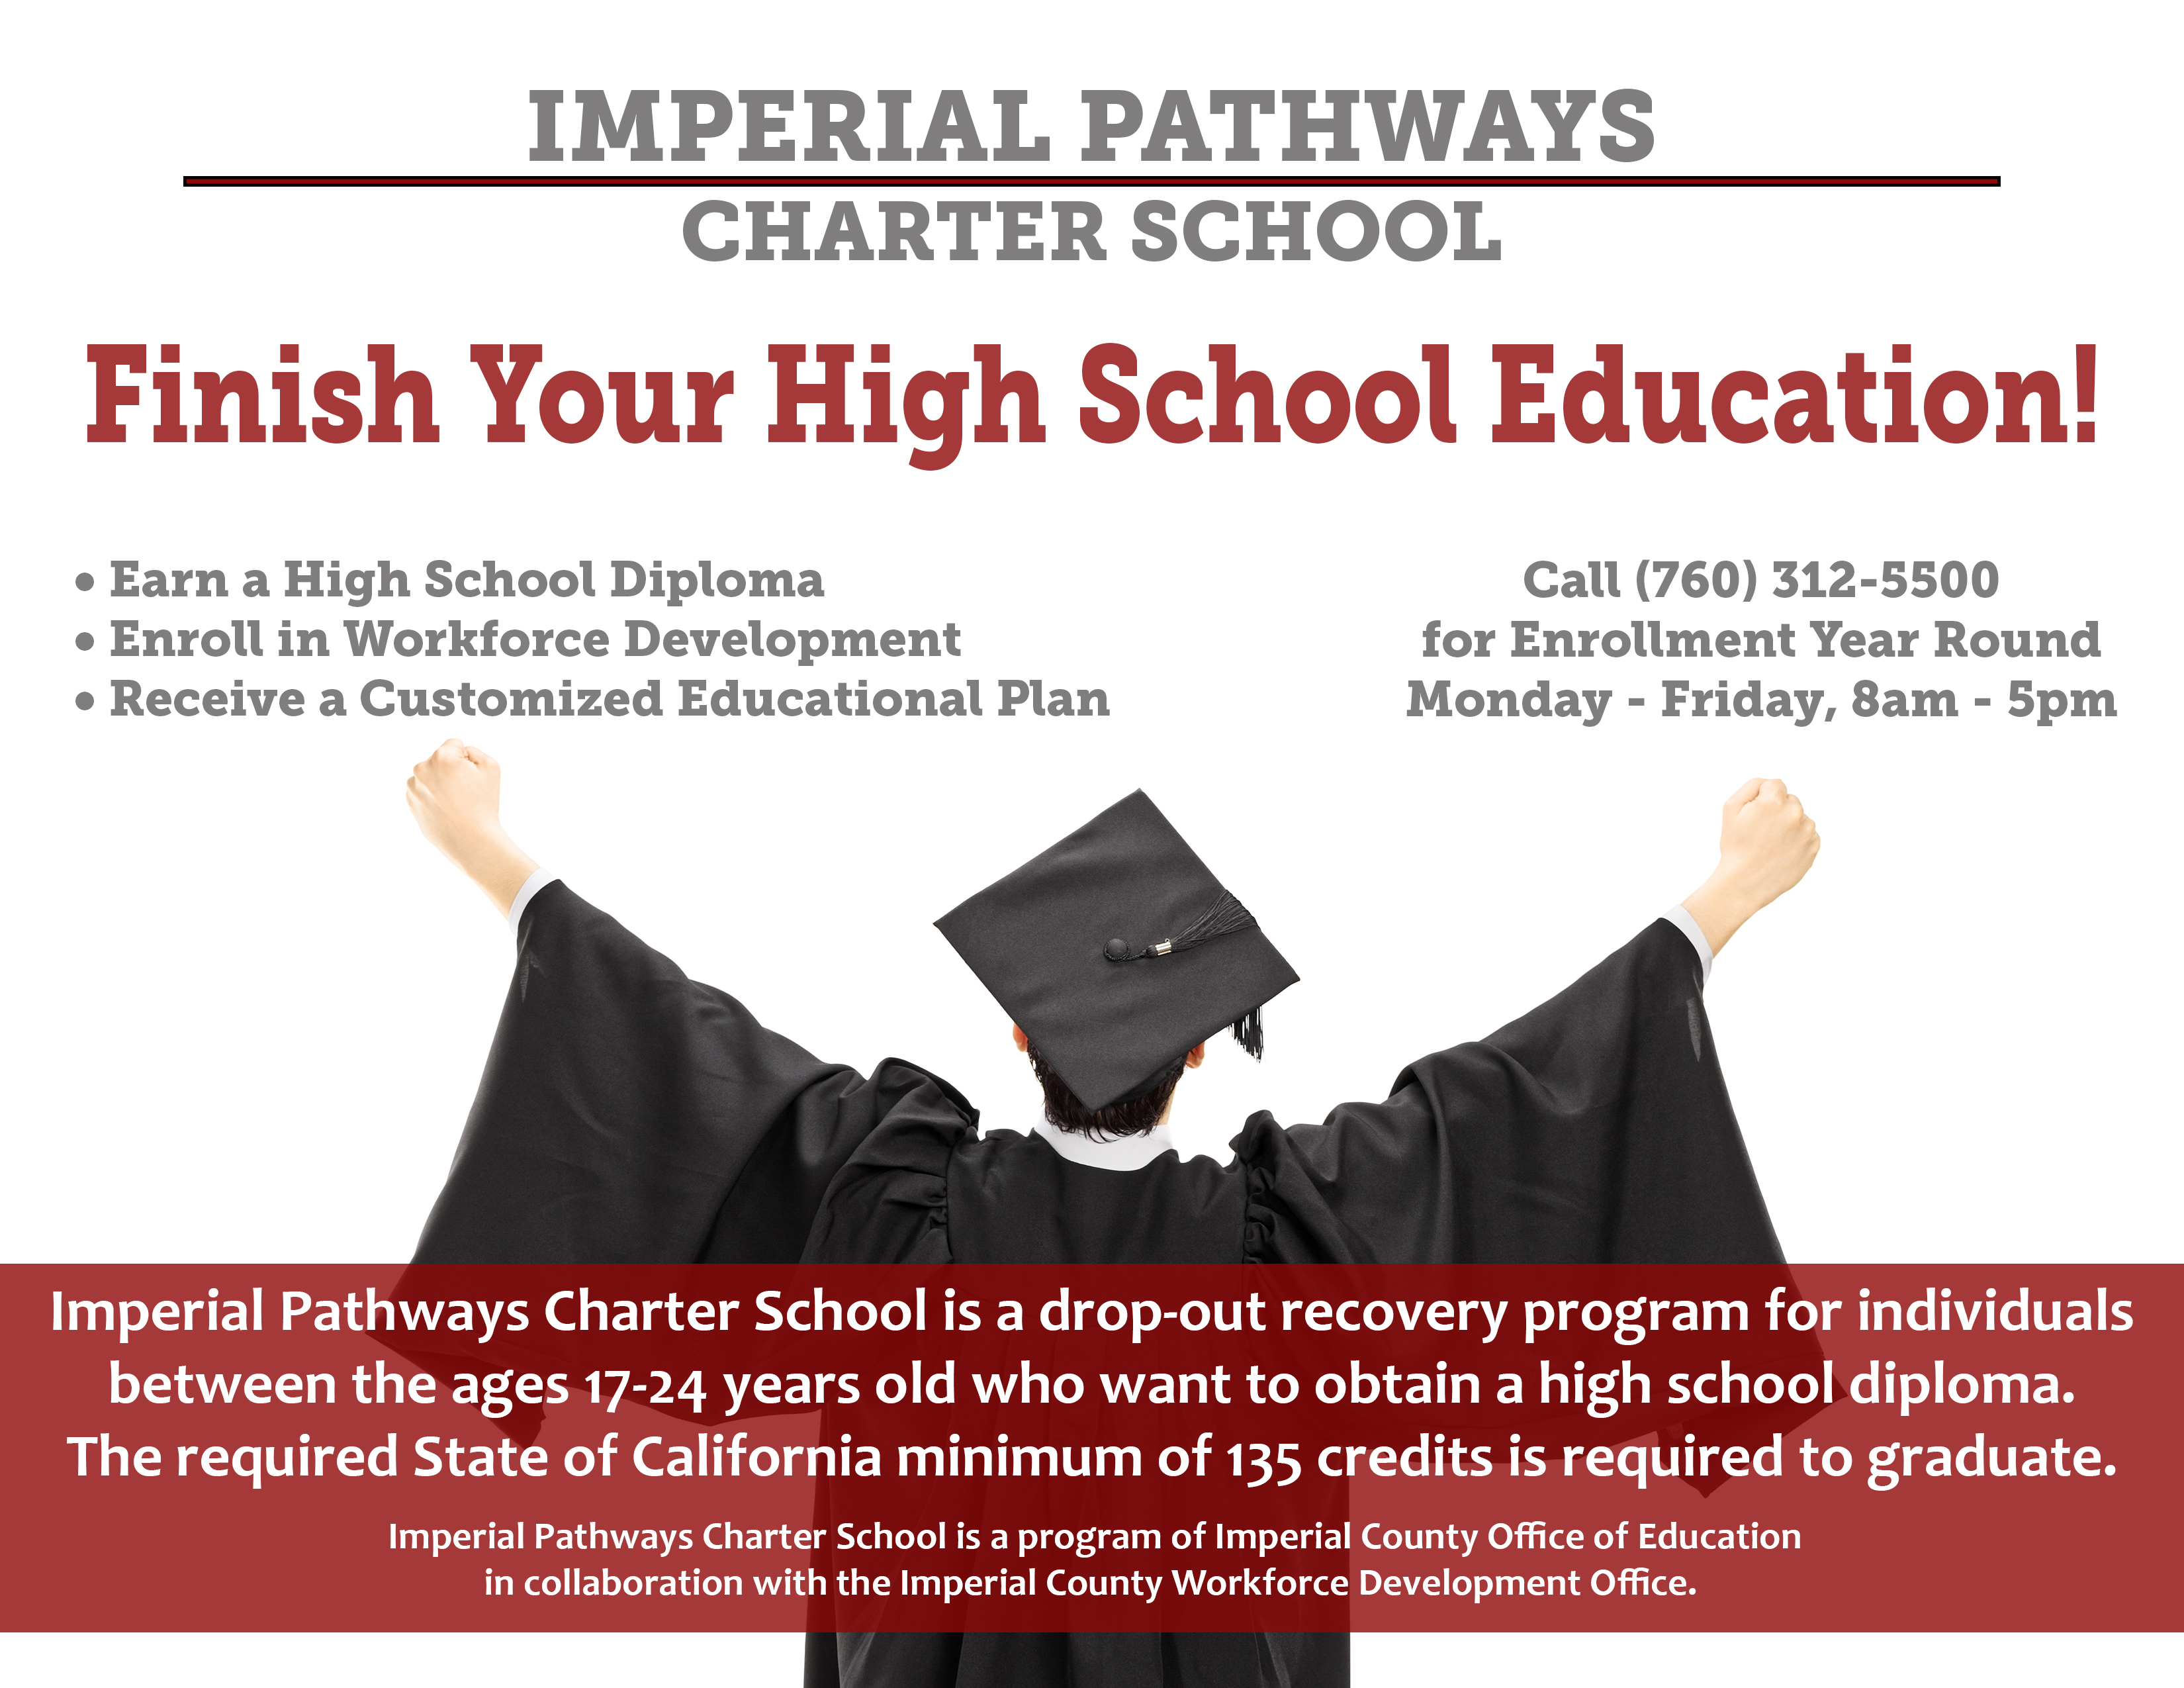 Imperial Pathways Charter School